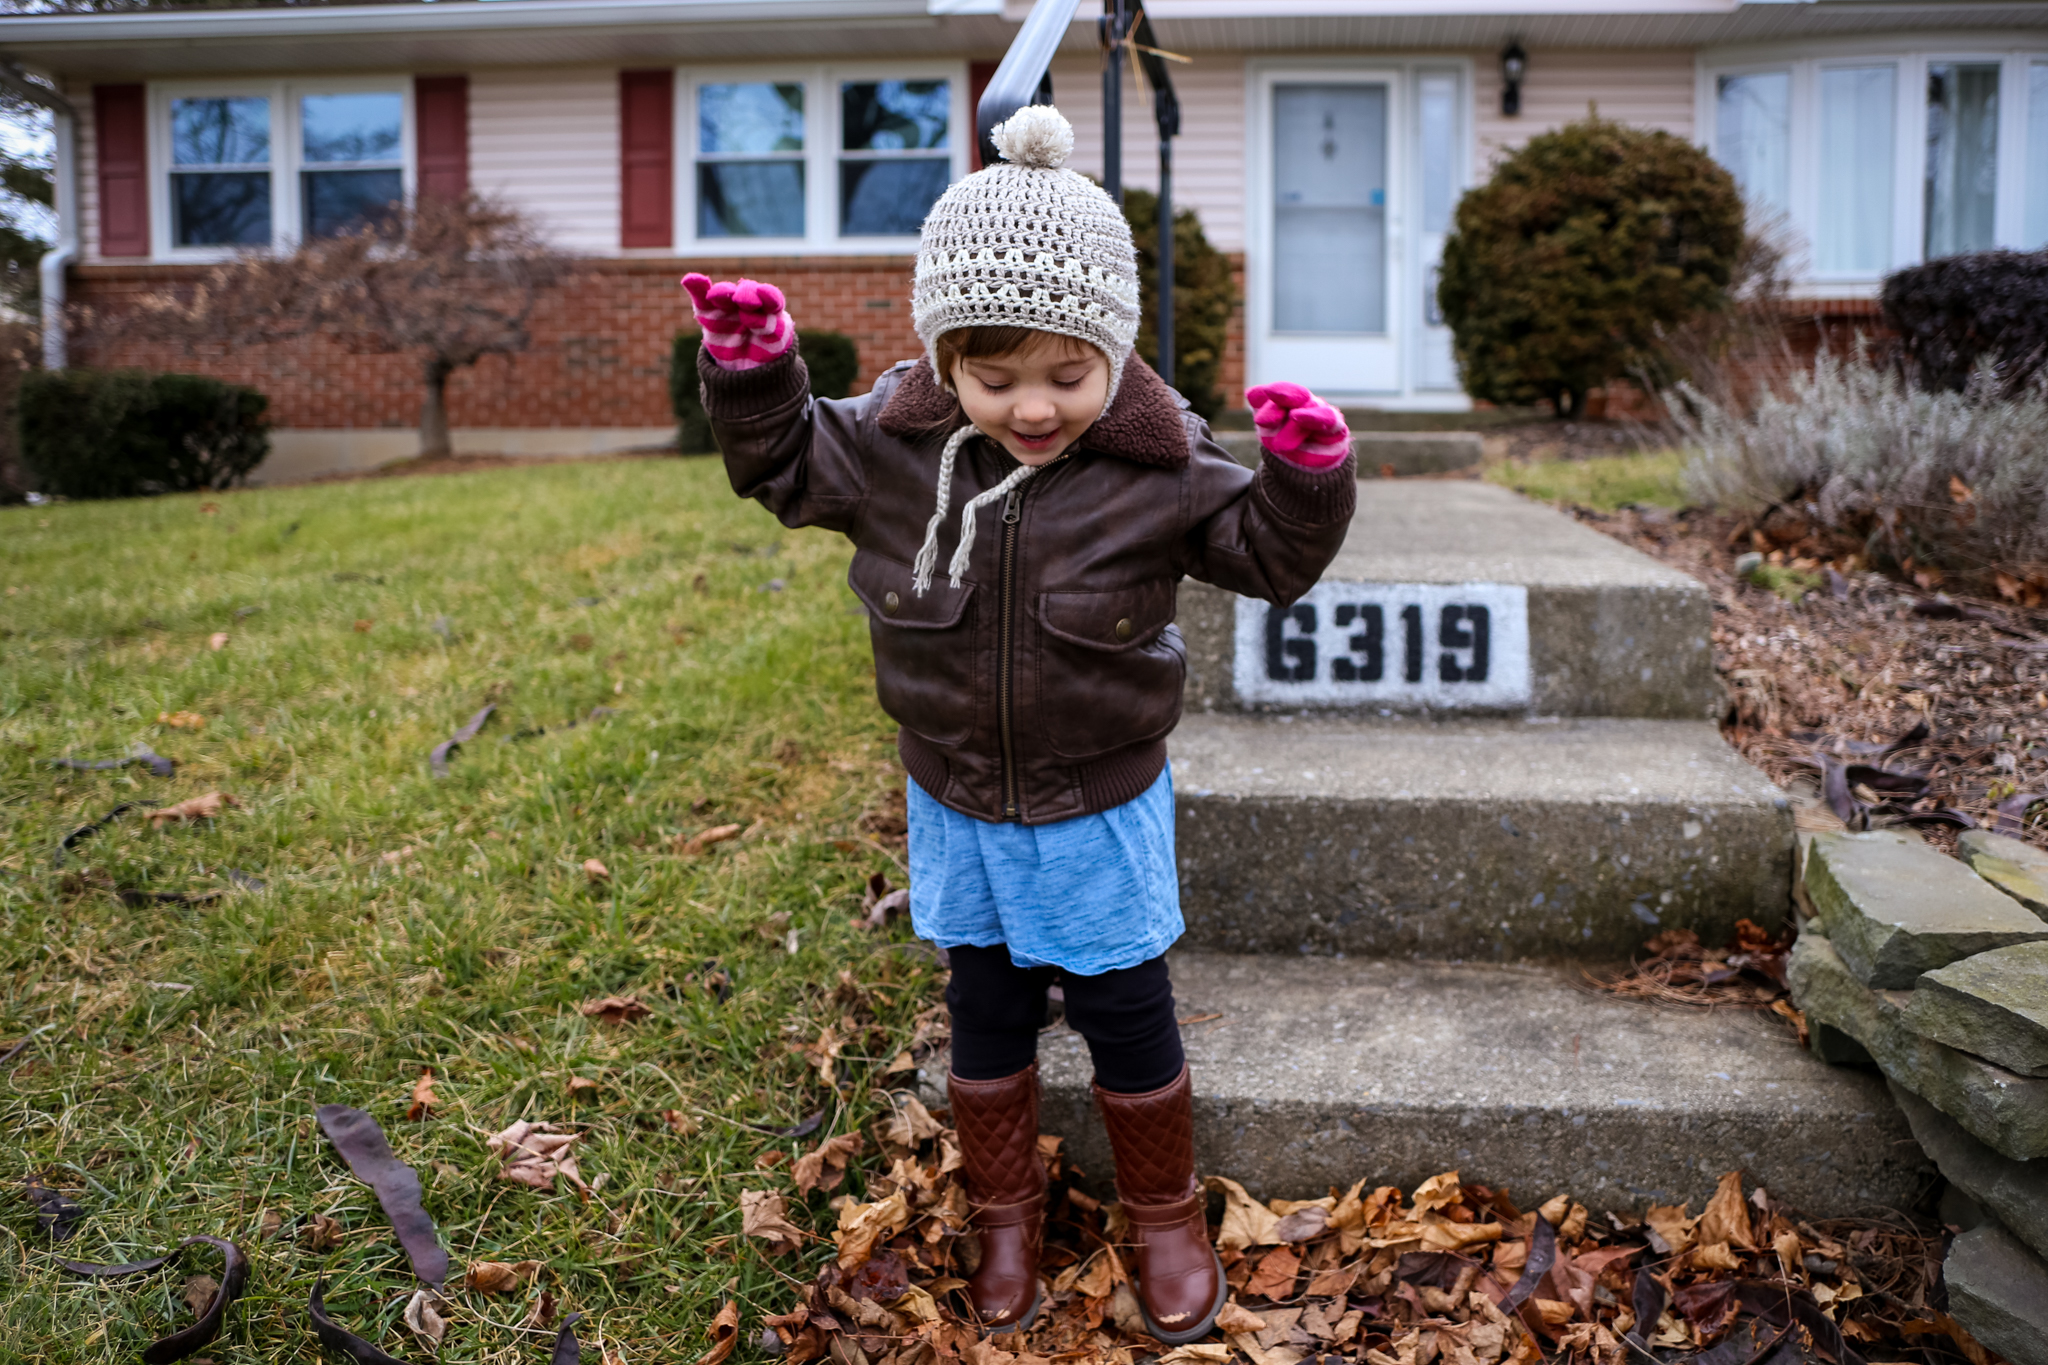 Toddler in her winter coat and hat, outside her home during a family photography session in Macungie, PA.